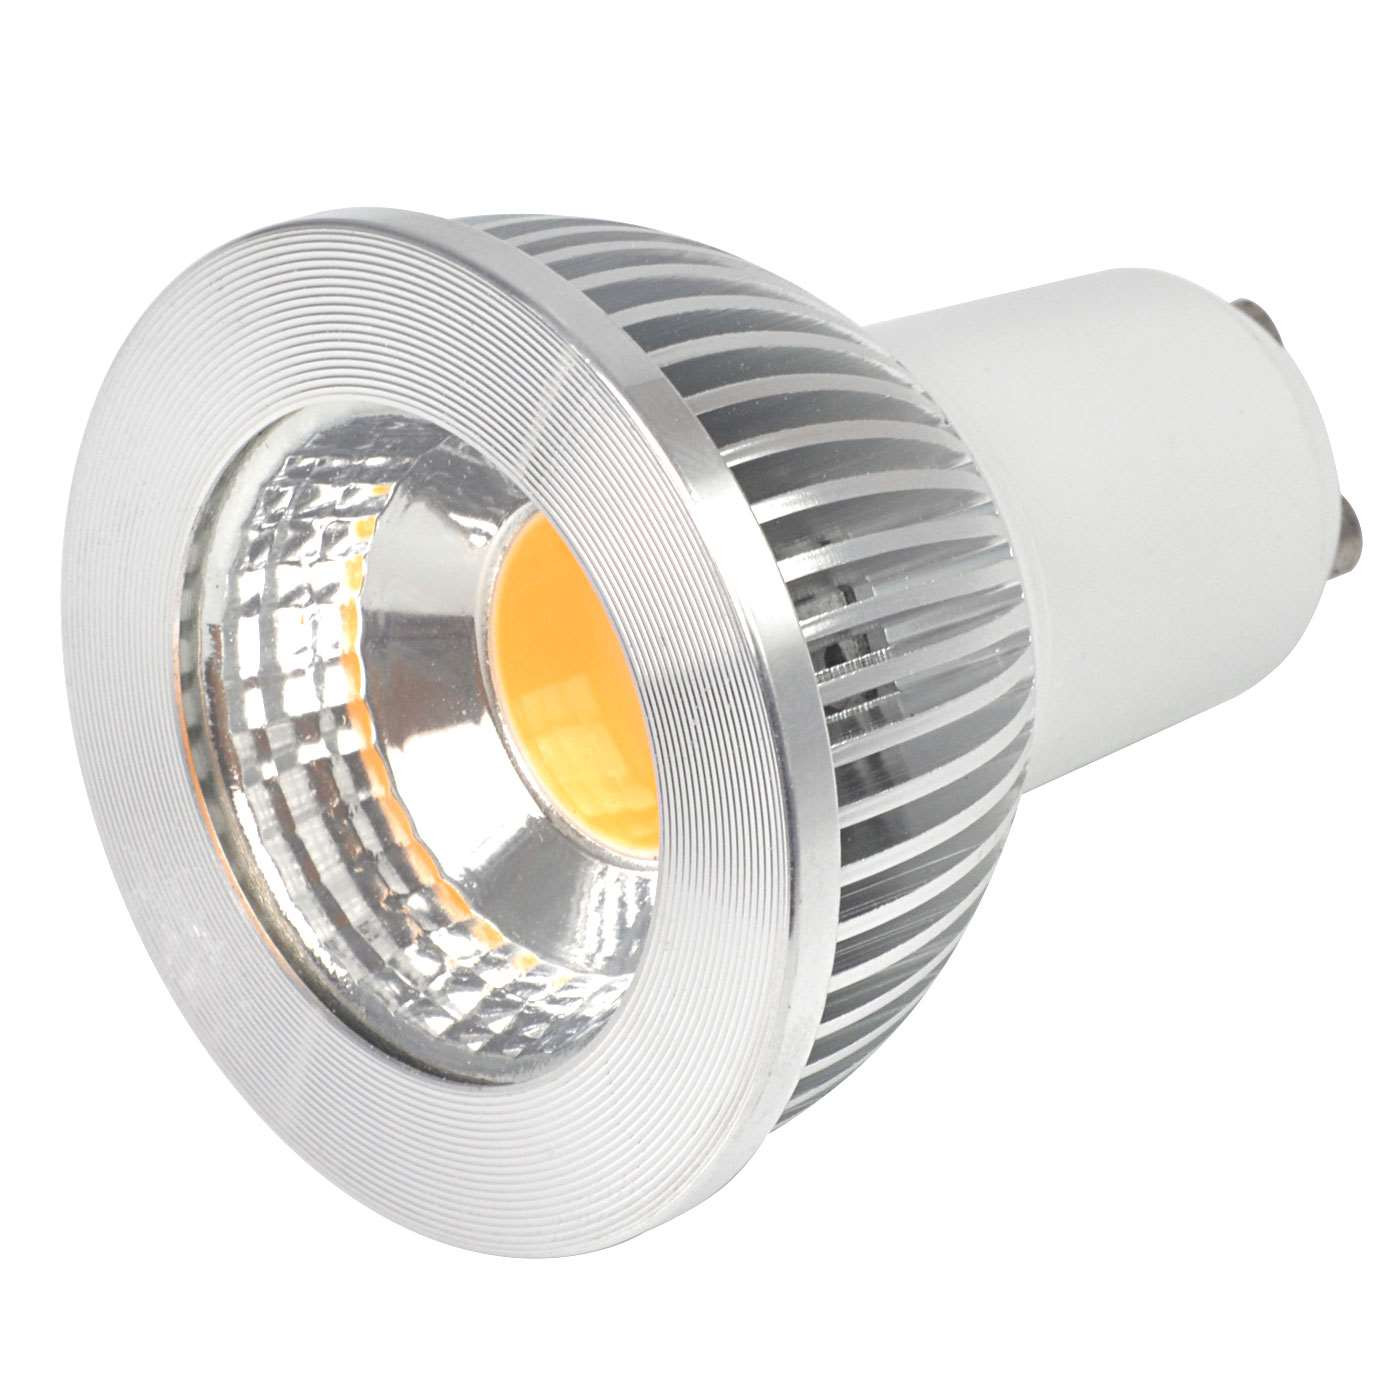 MENGS® GU10 5W LED Spotlight 1x 5W COB LEDs LED Bulb in Warm White Energy-saving Lamp